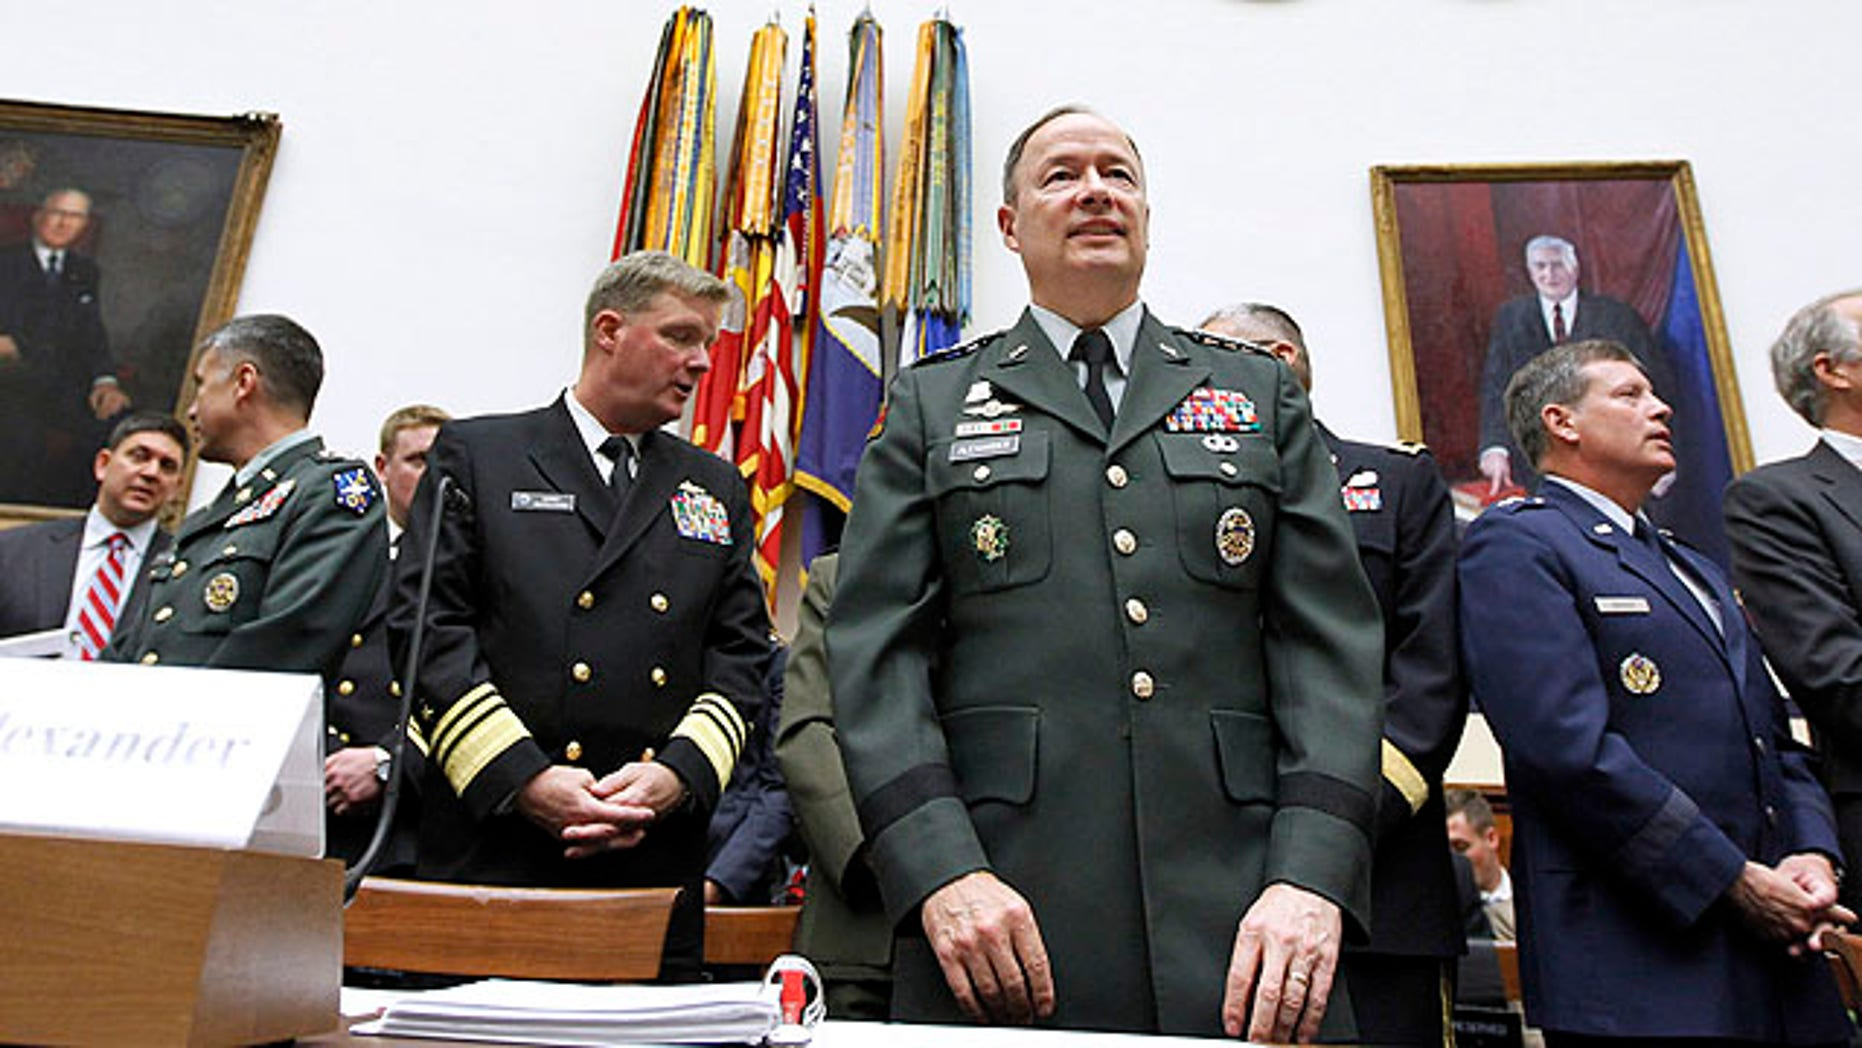 Sept. 23, 2010: Army Gen. Keith B. Alexander, commander of the U.S. Cyber Command, center, arrives on Capitol Hill in Washington to testify before the House Armed Services Committee hearing on cyberspace operations.